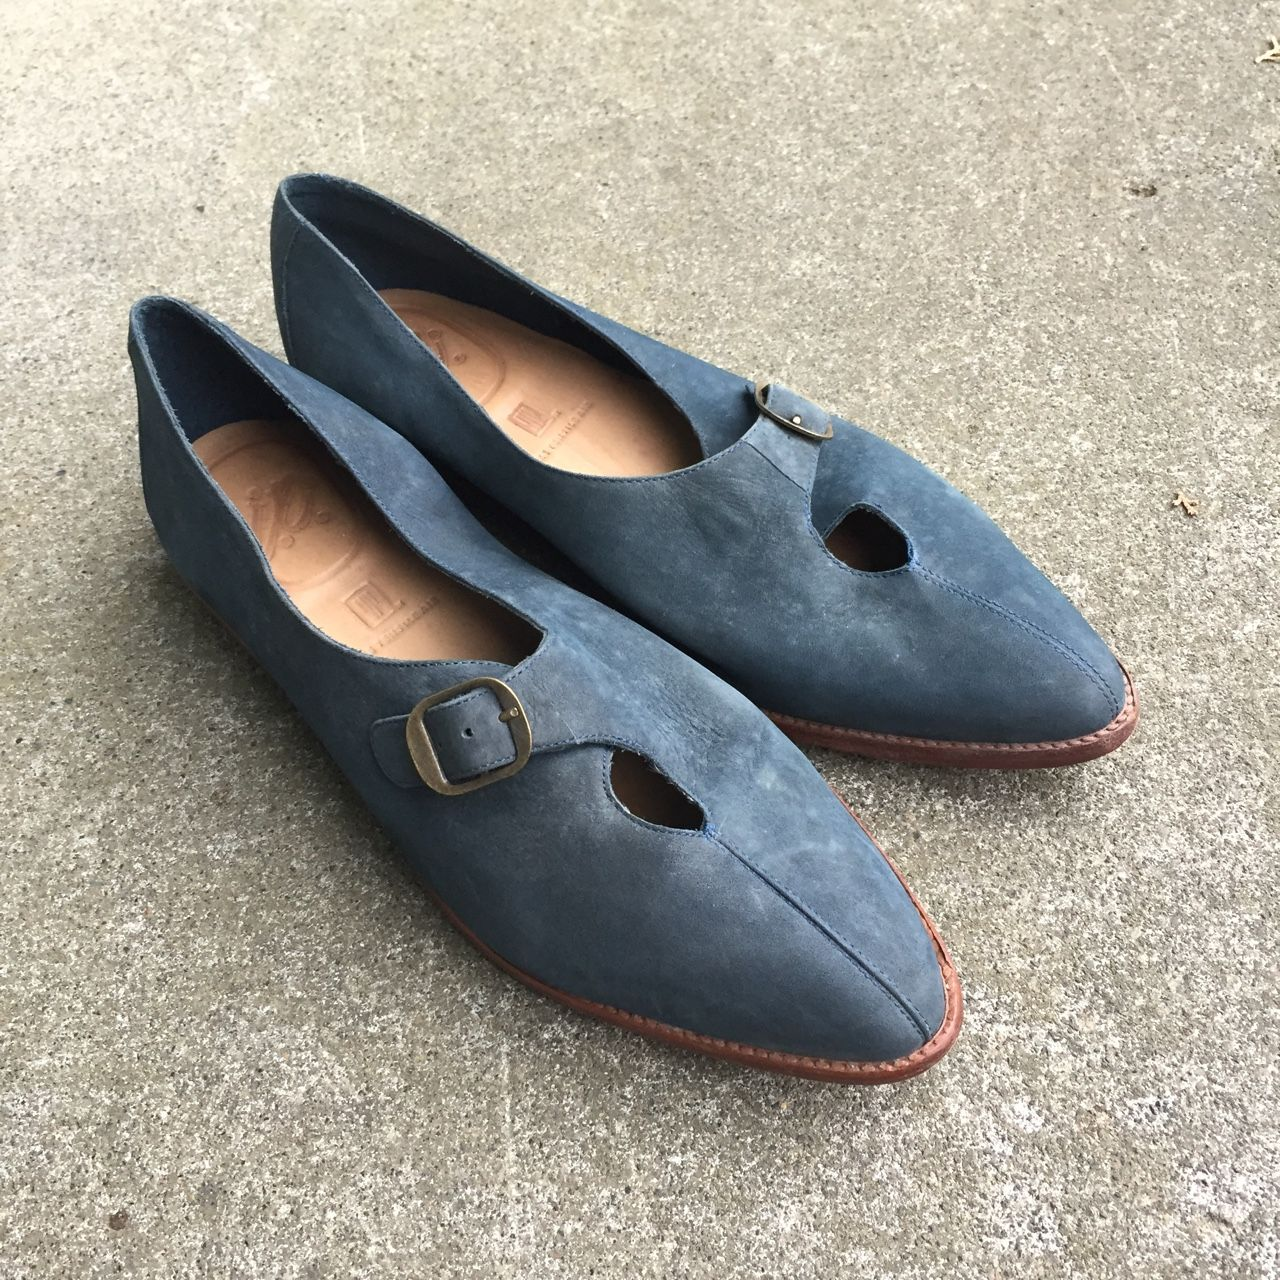 NIKE blue suede flats with little peek a boo buckle! Dated 91 and made in Brazil.